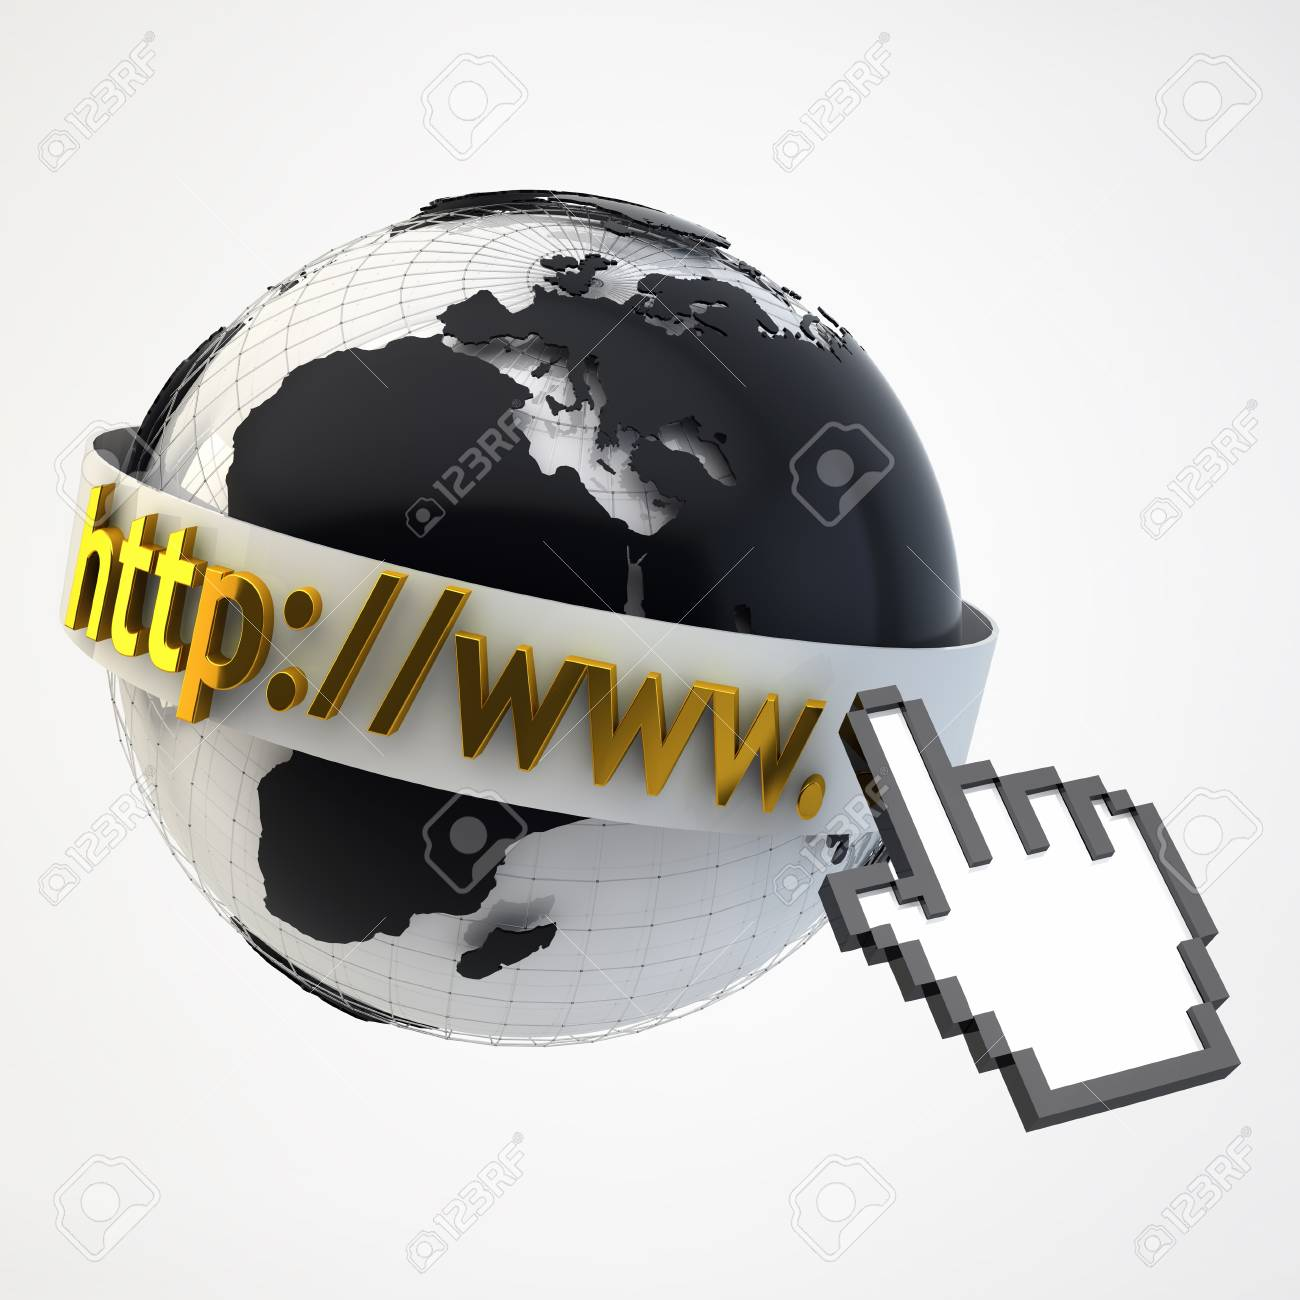 Internet Concept Illustration - Globe Coverered by Domain Bar Label with pointing hand arrow icon Stock Photo - 17771087